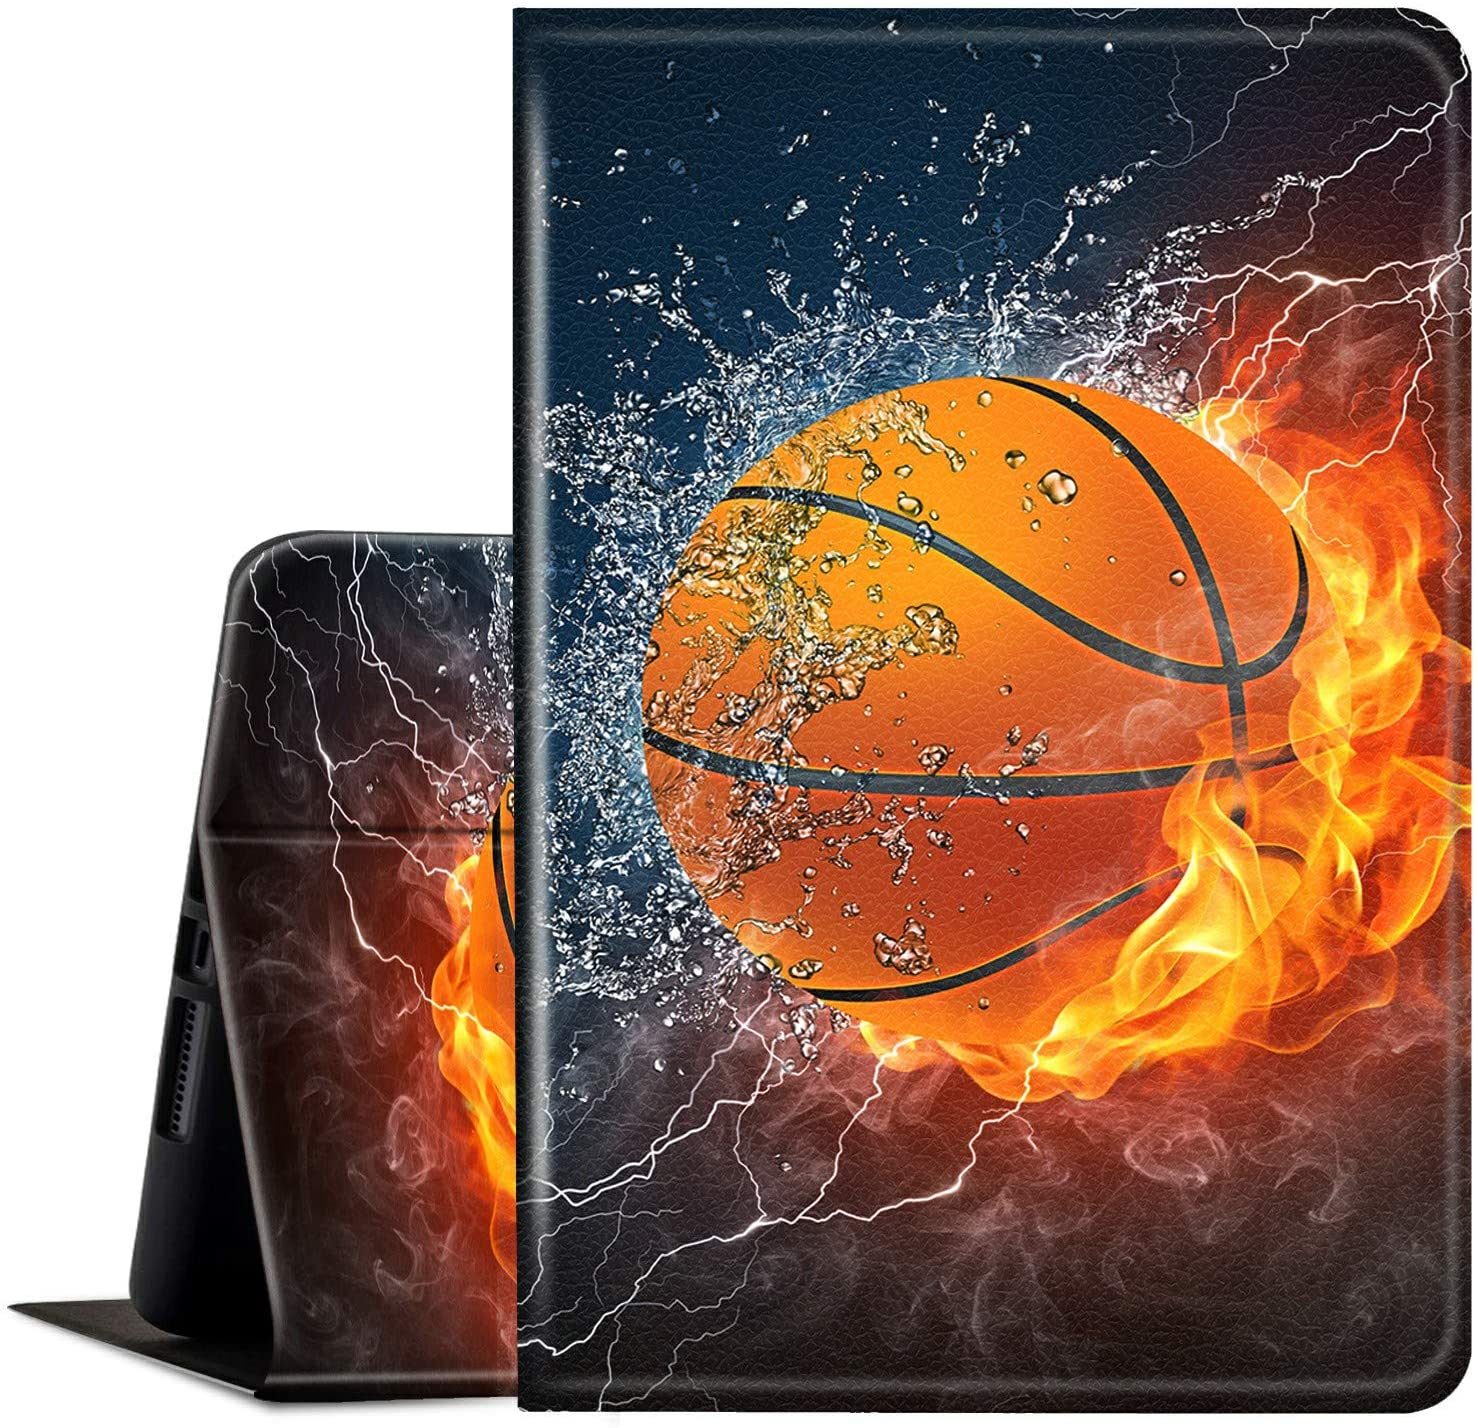 Fire HD 8 Case 2020,Fire HD 8 Plus Tablet Case (10th Generation, 2020 Version), Multi-Angle Anti Slide Stand Smart Cover Cases for New DHgate Kindle Fire HD 8 2020-Basketball on Fire Water